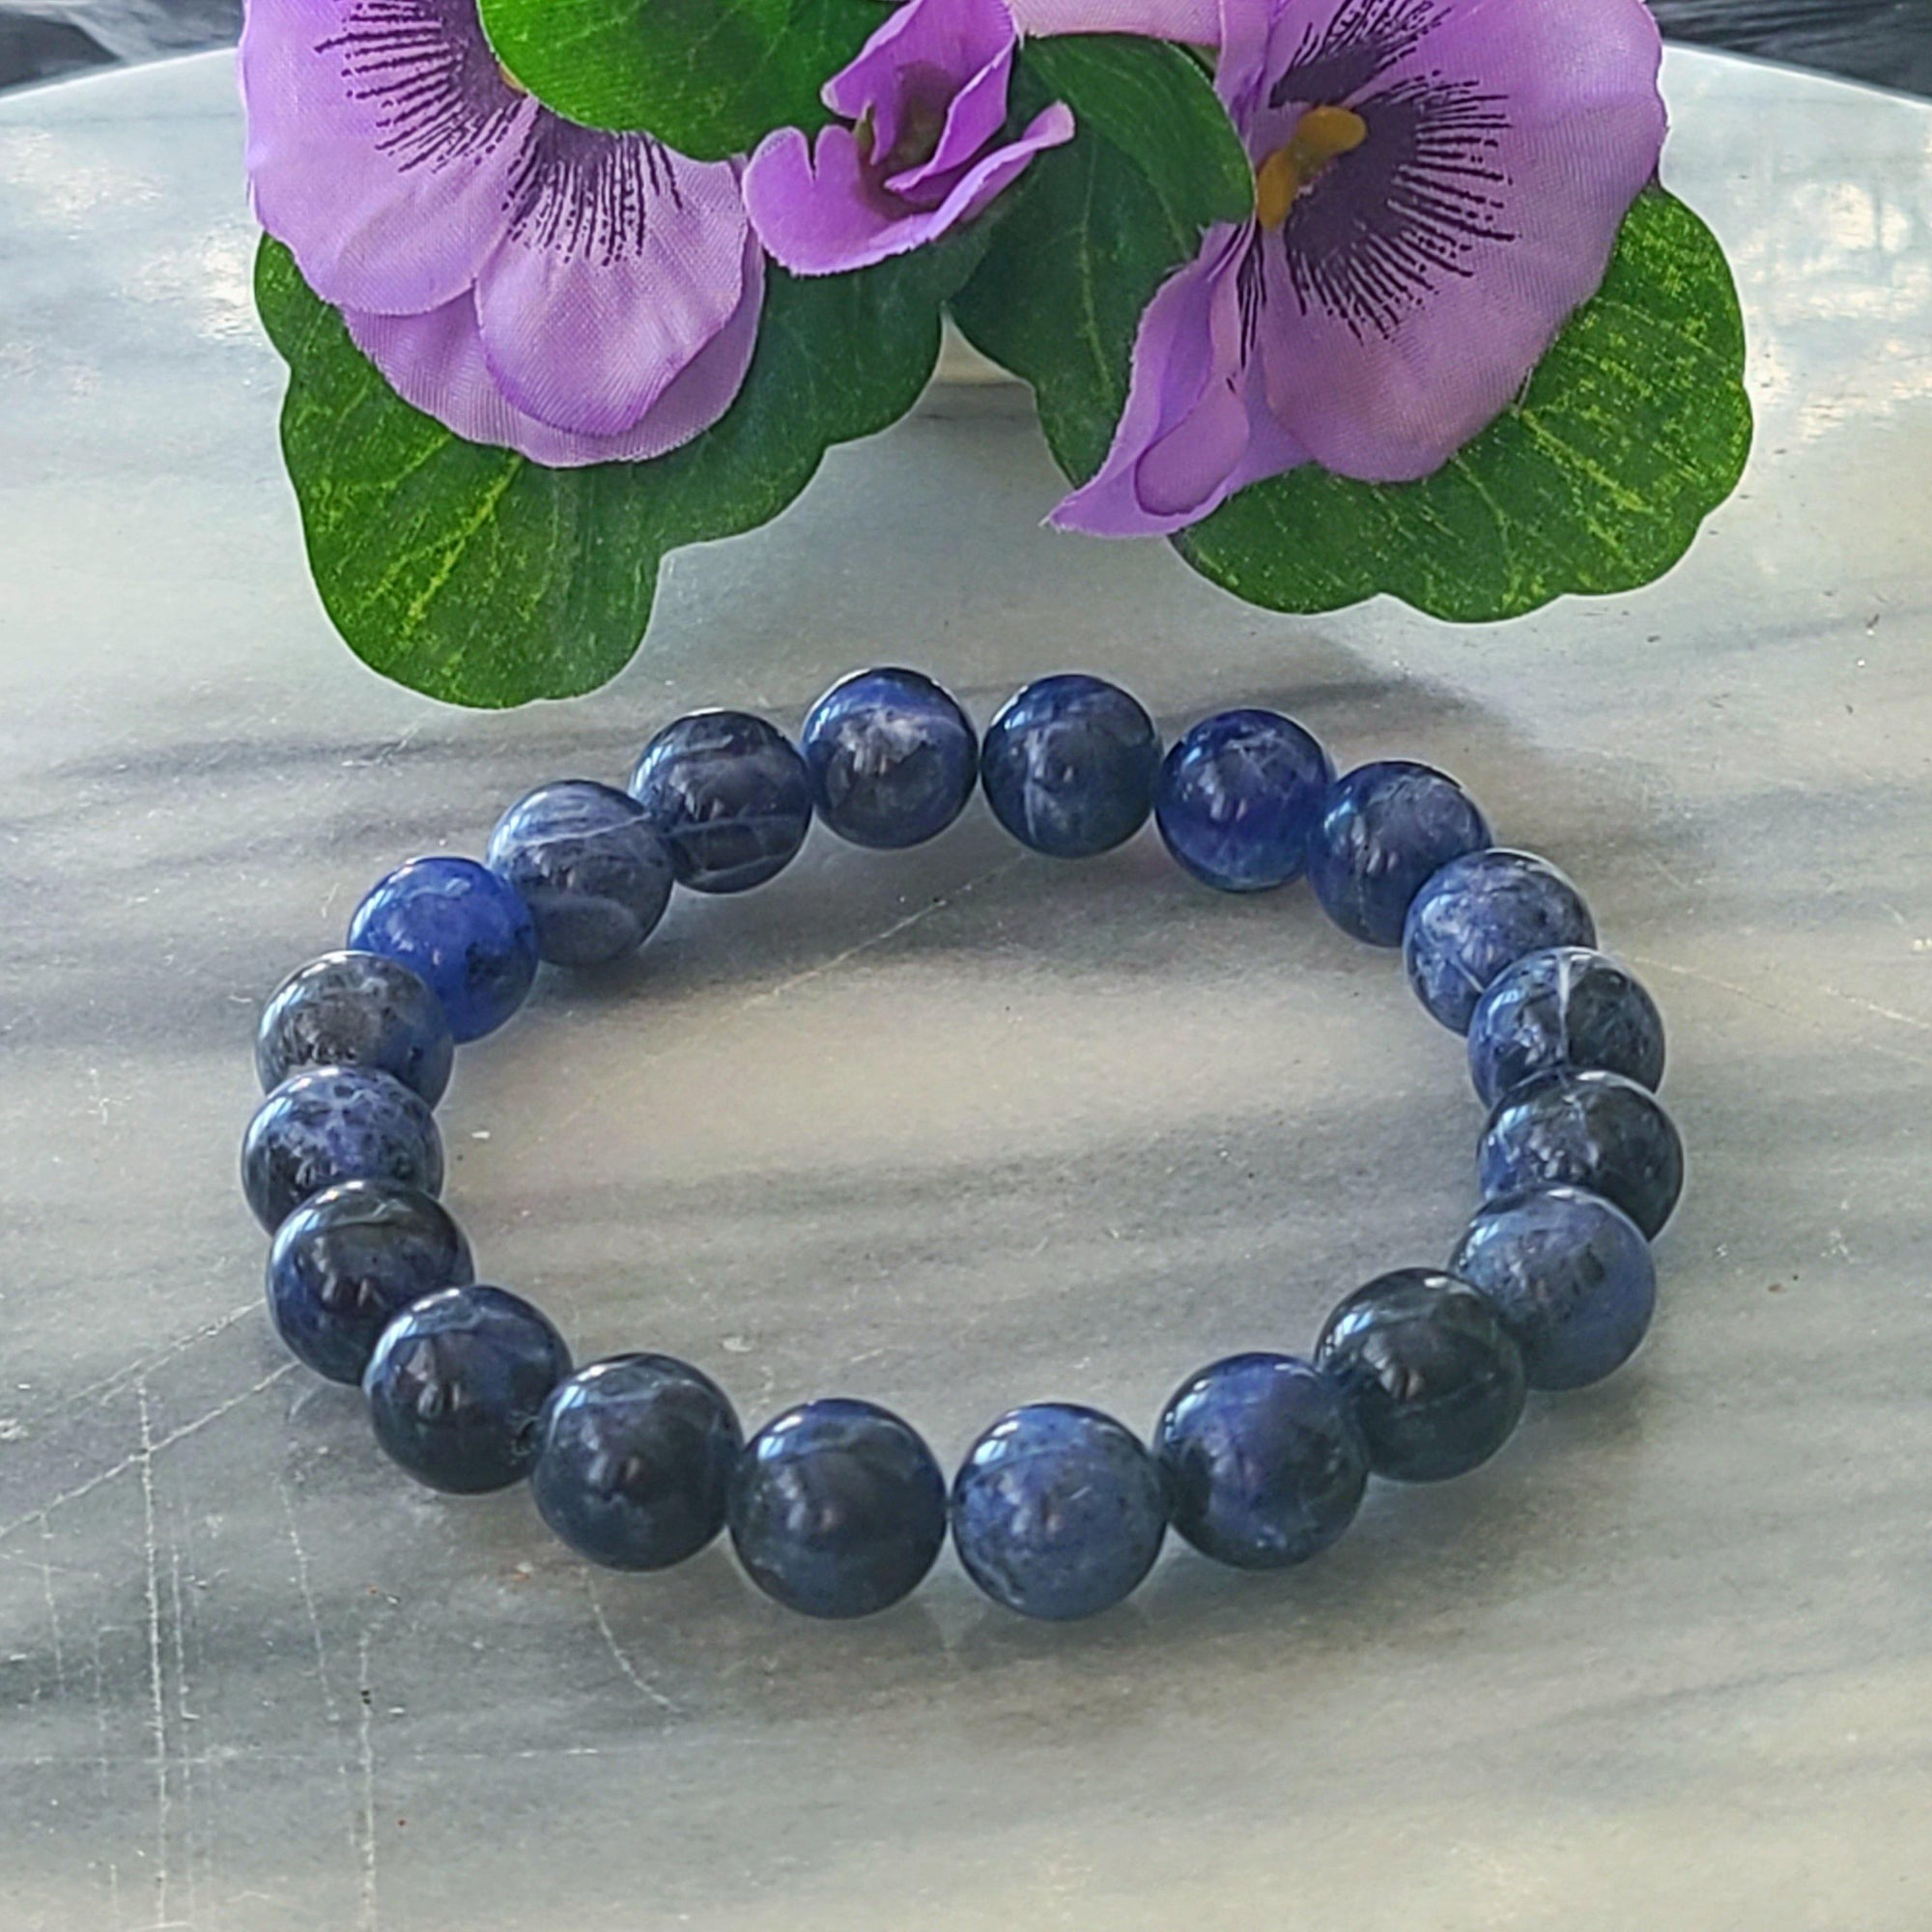 Wisdom, Truth, Self-awareness | Men's Beaded Stretch Bracelet | Lapis Lazuli Gemstone